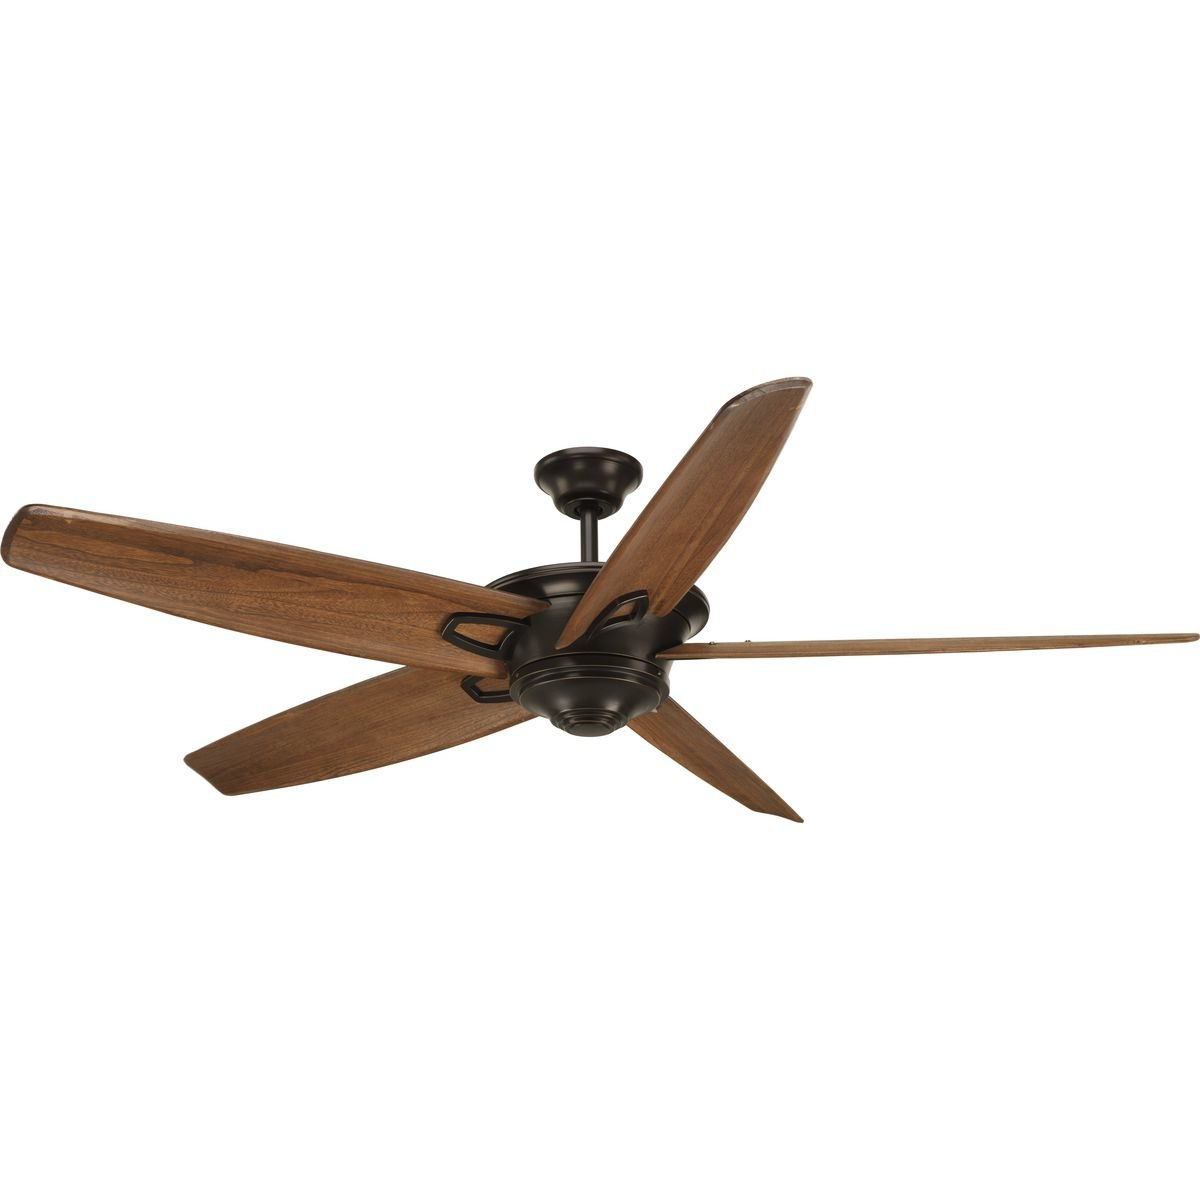 "Famous 68"" Gehl 5 Blade Ceiling Fan With Remote Intended For Crestfield 5 Blade Ceiling Fans (View 10 of 20)"